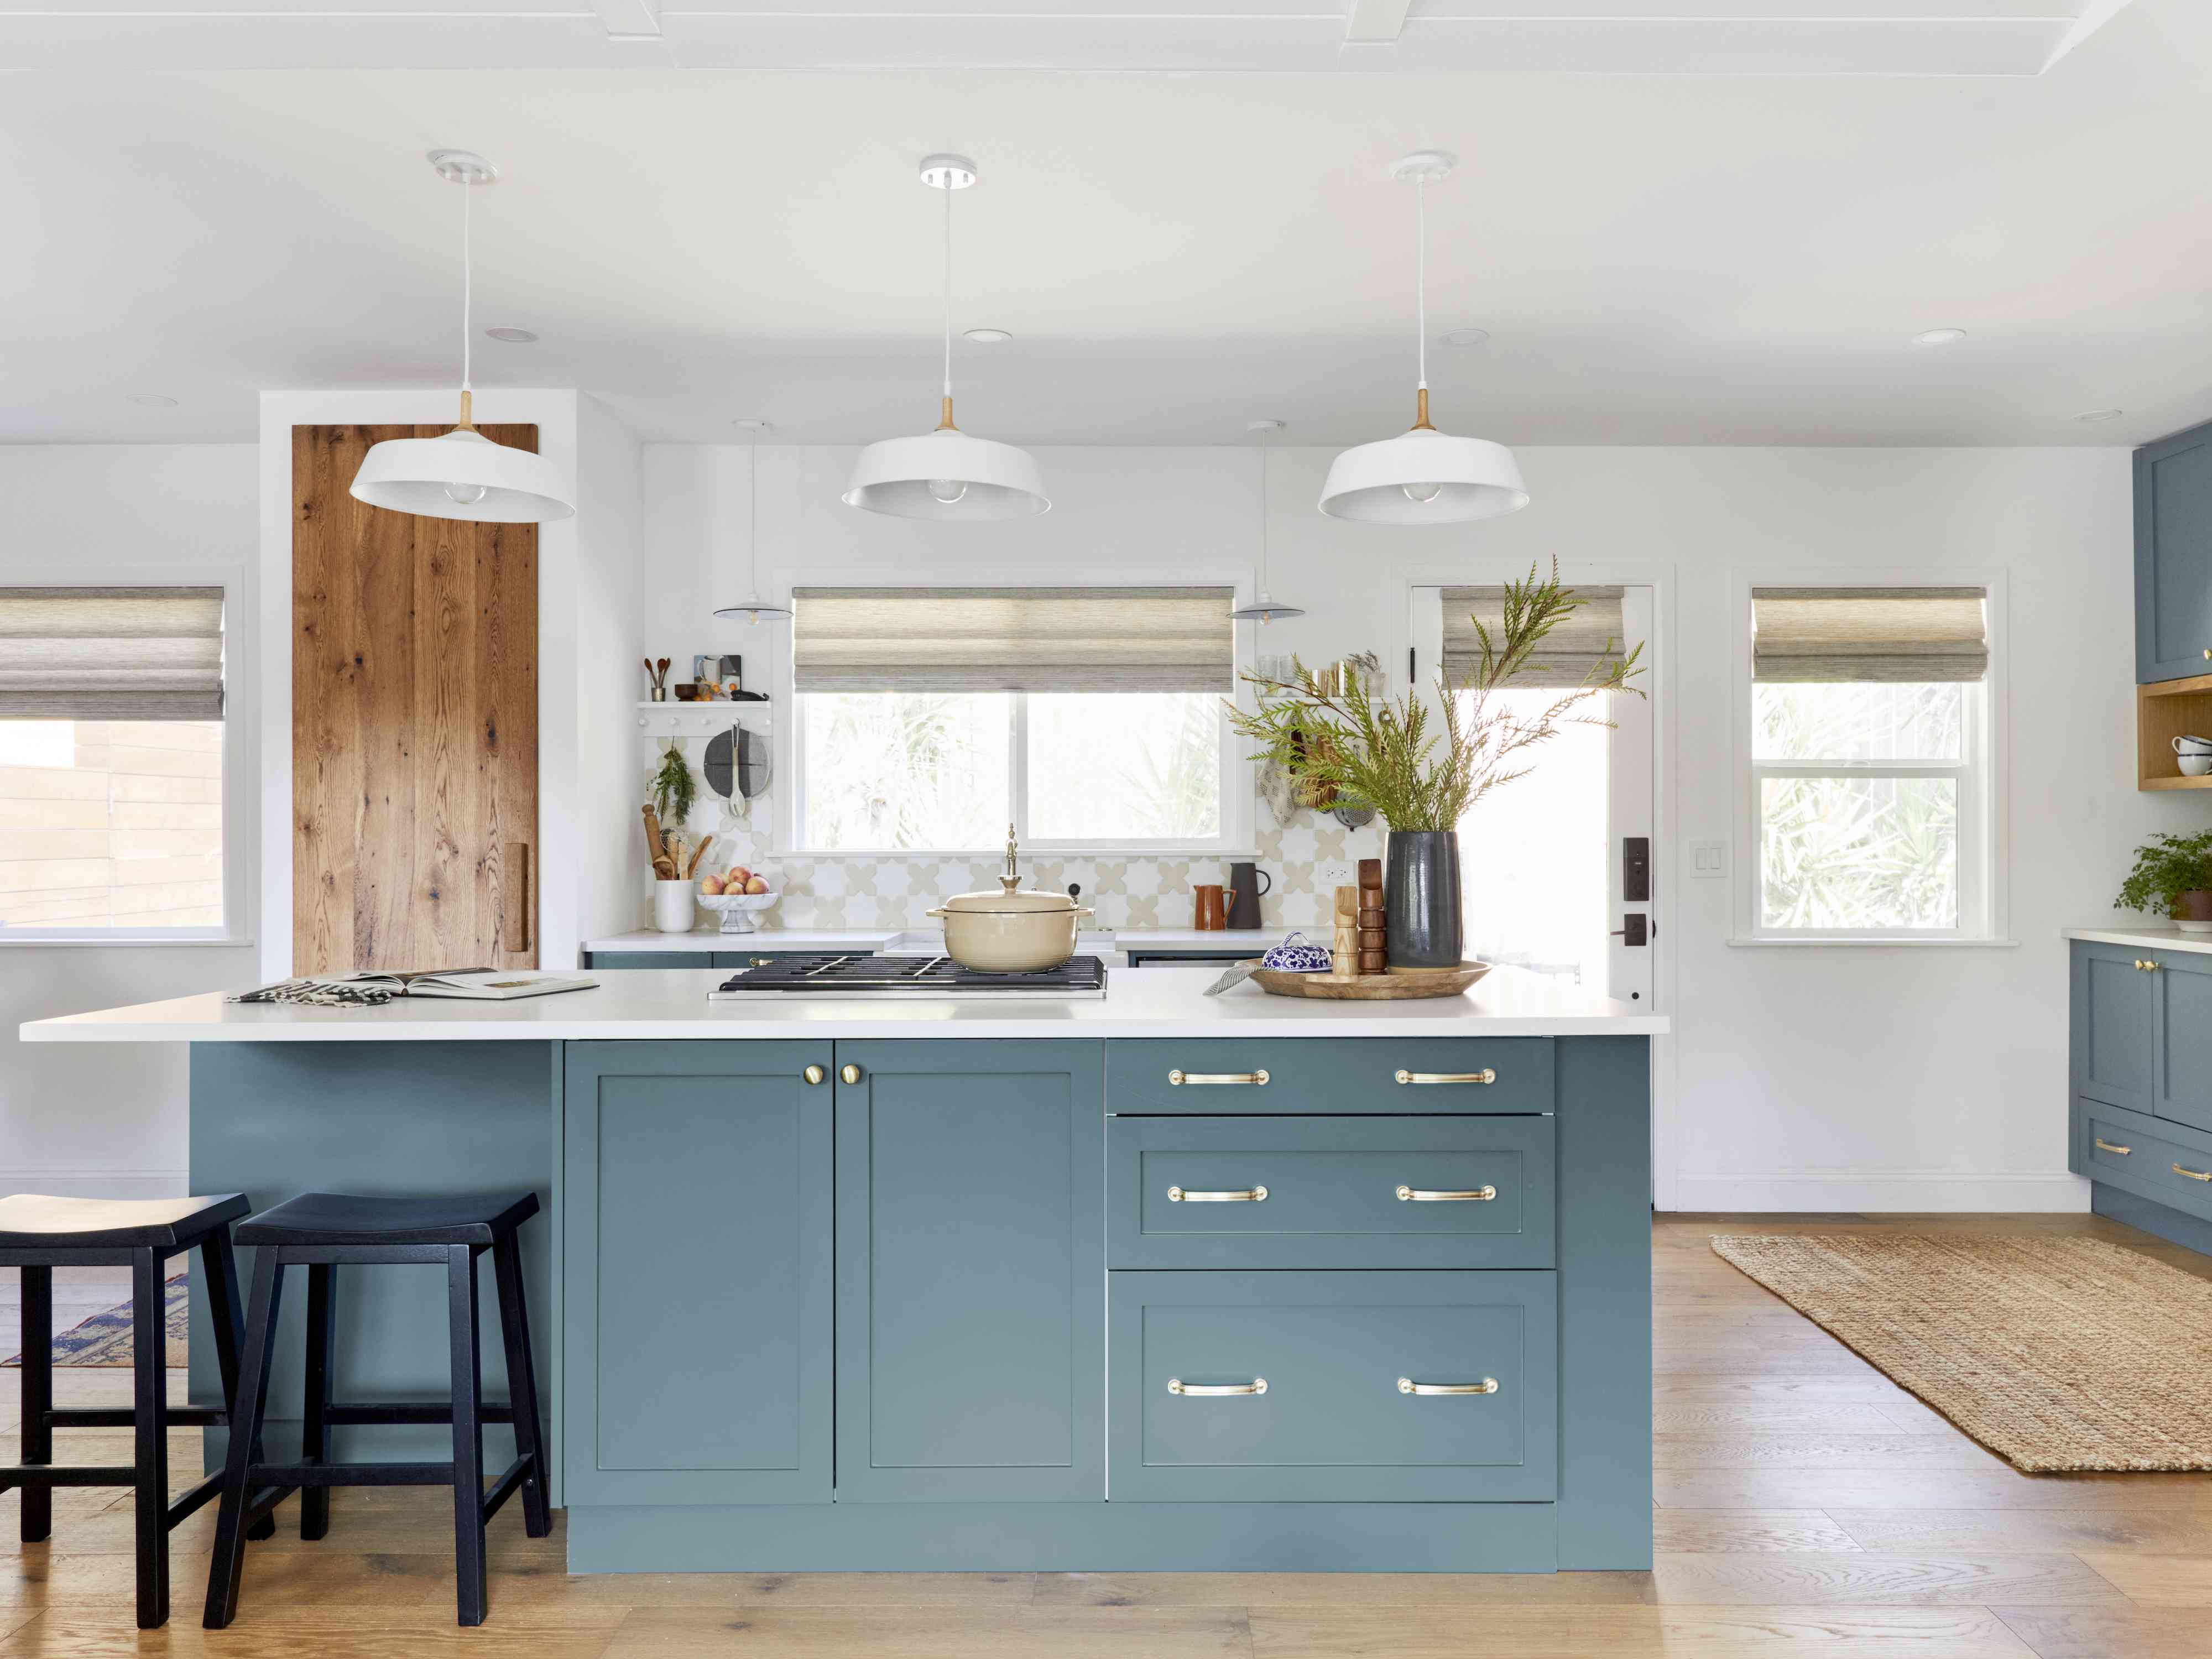 Teal kitchen island in white kitchen with white pendant lights.